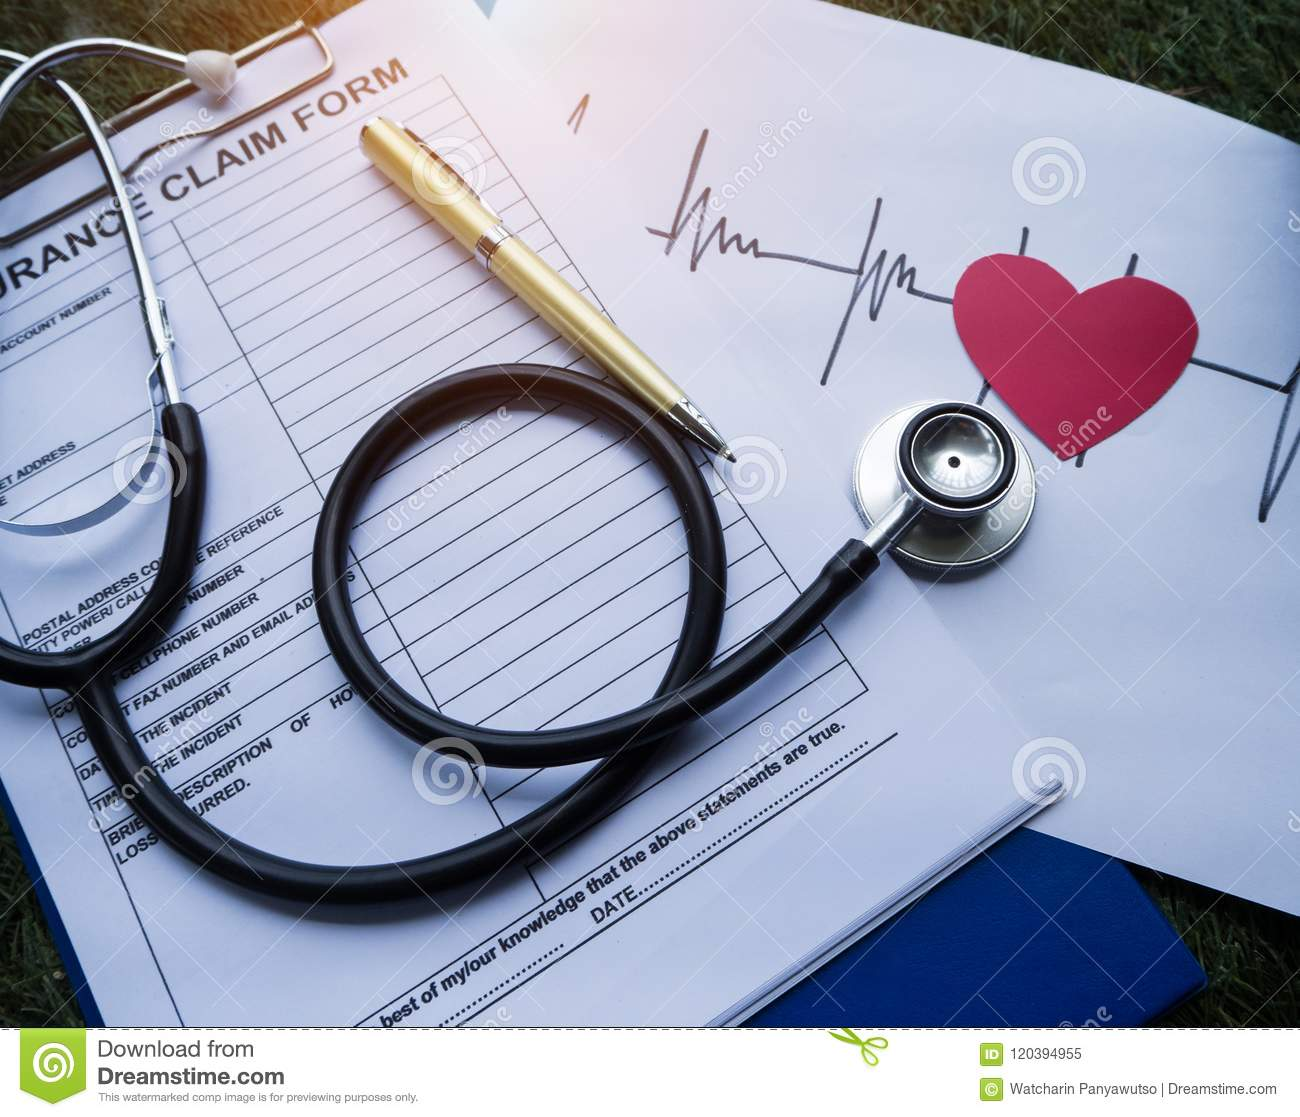 The Stethoscope put on the insurance claim form,beside cutted red heart paper and heart rate drawing ,on green grass ground floor